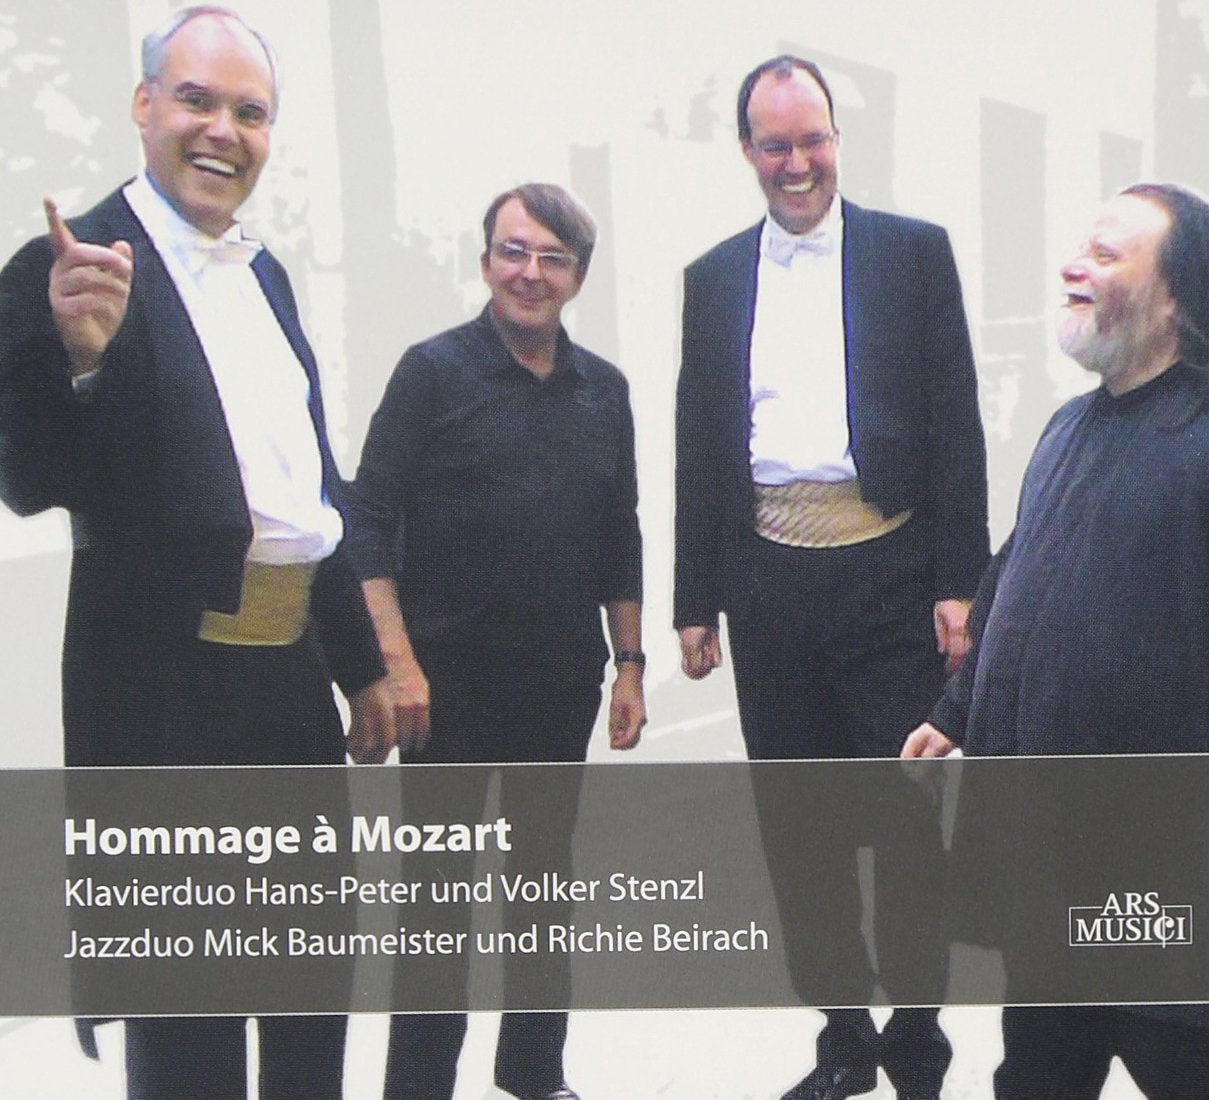 HOMMAGE A MOZART: CLASSICAL AND JAZZ DUO